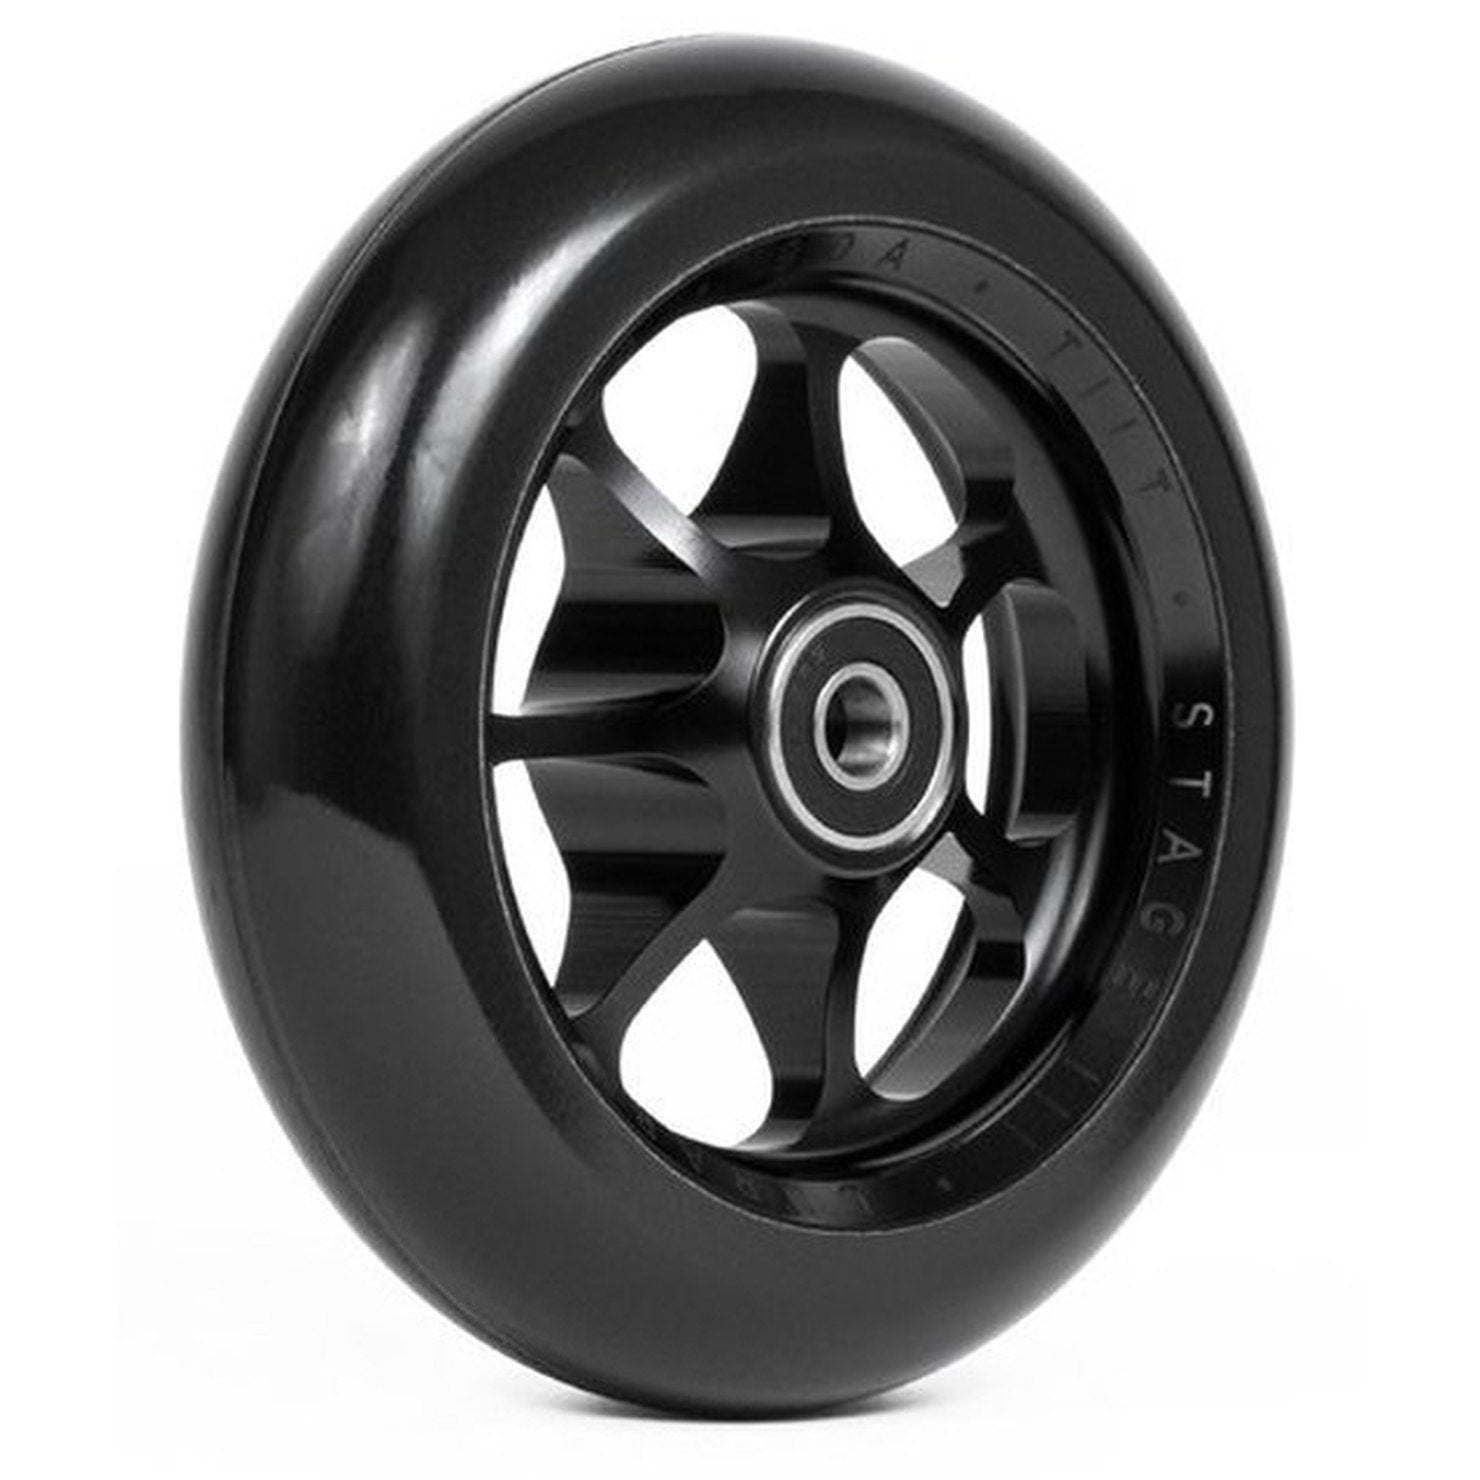 Tilt Stage III 30x120 Wheels